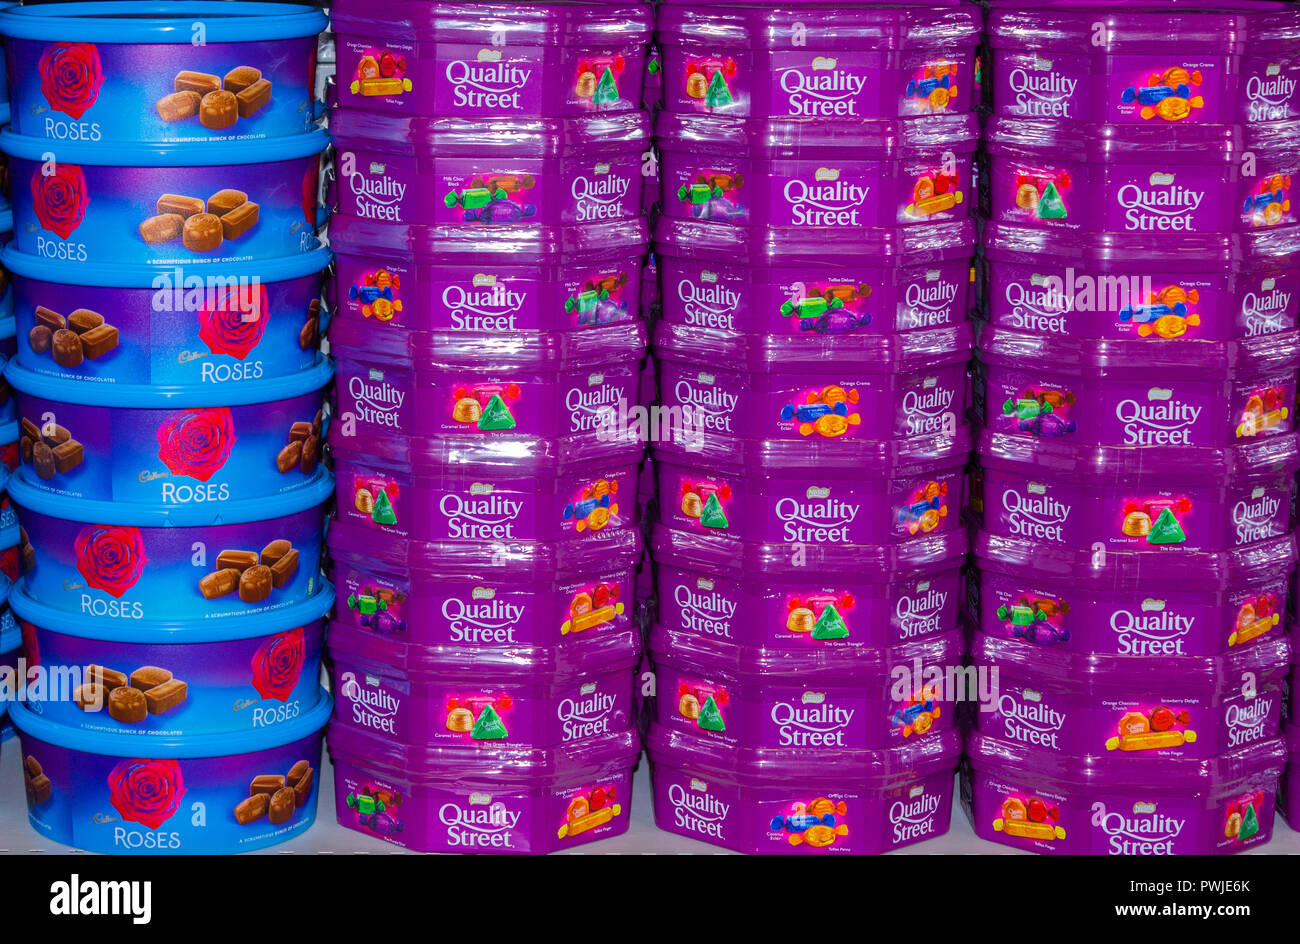 christmas-boxes-of-candy-or-chocolates-or-sweets-stacked-on-a-shop-shelf-PWJE6K.jpg